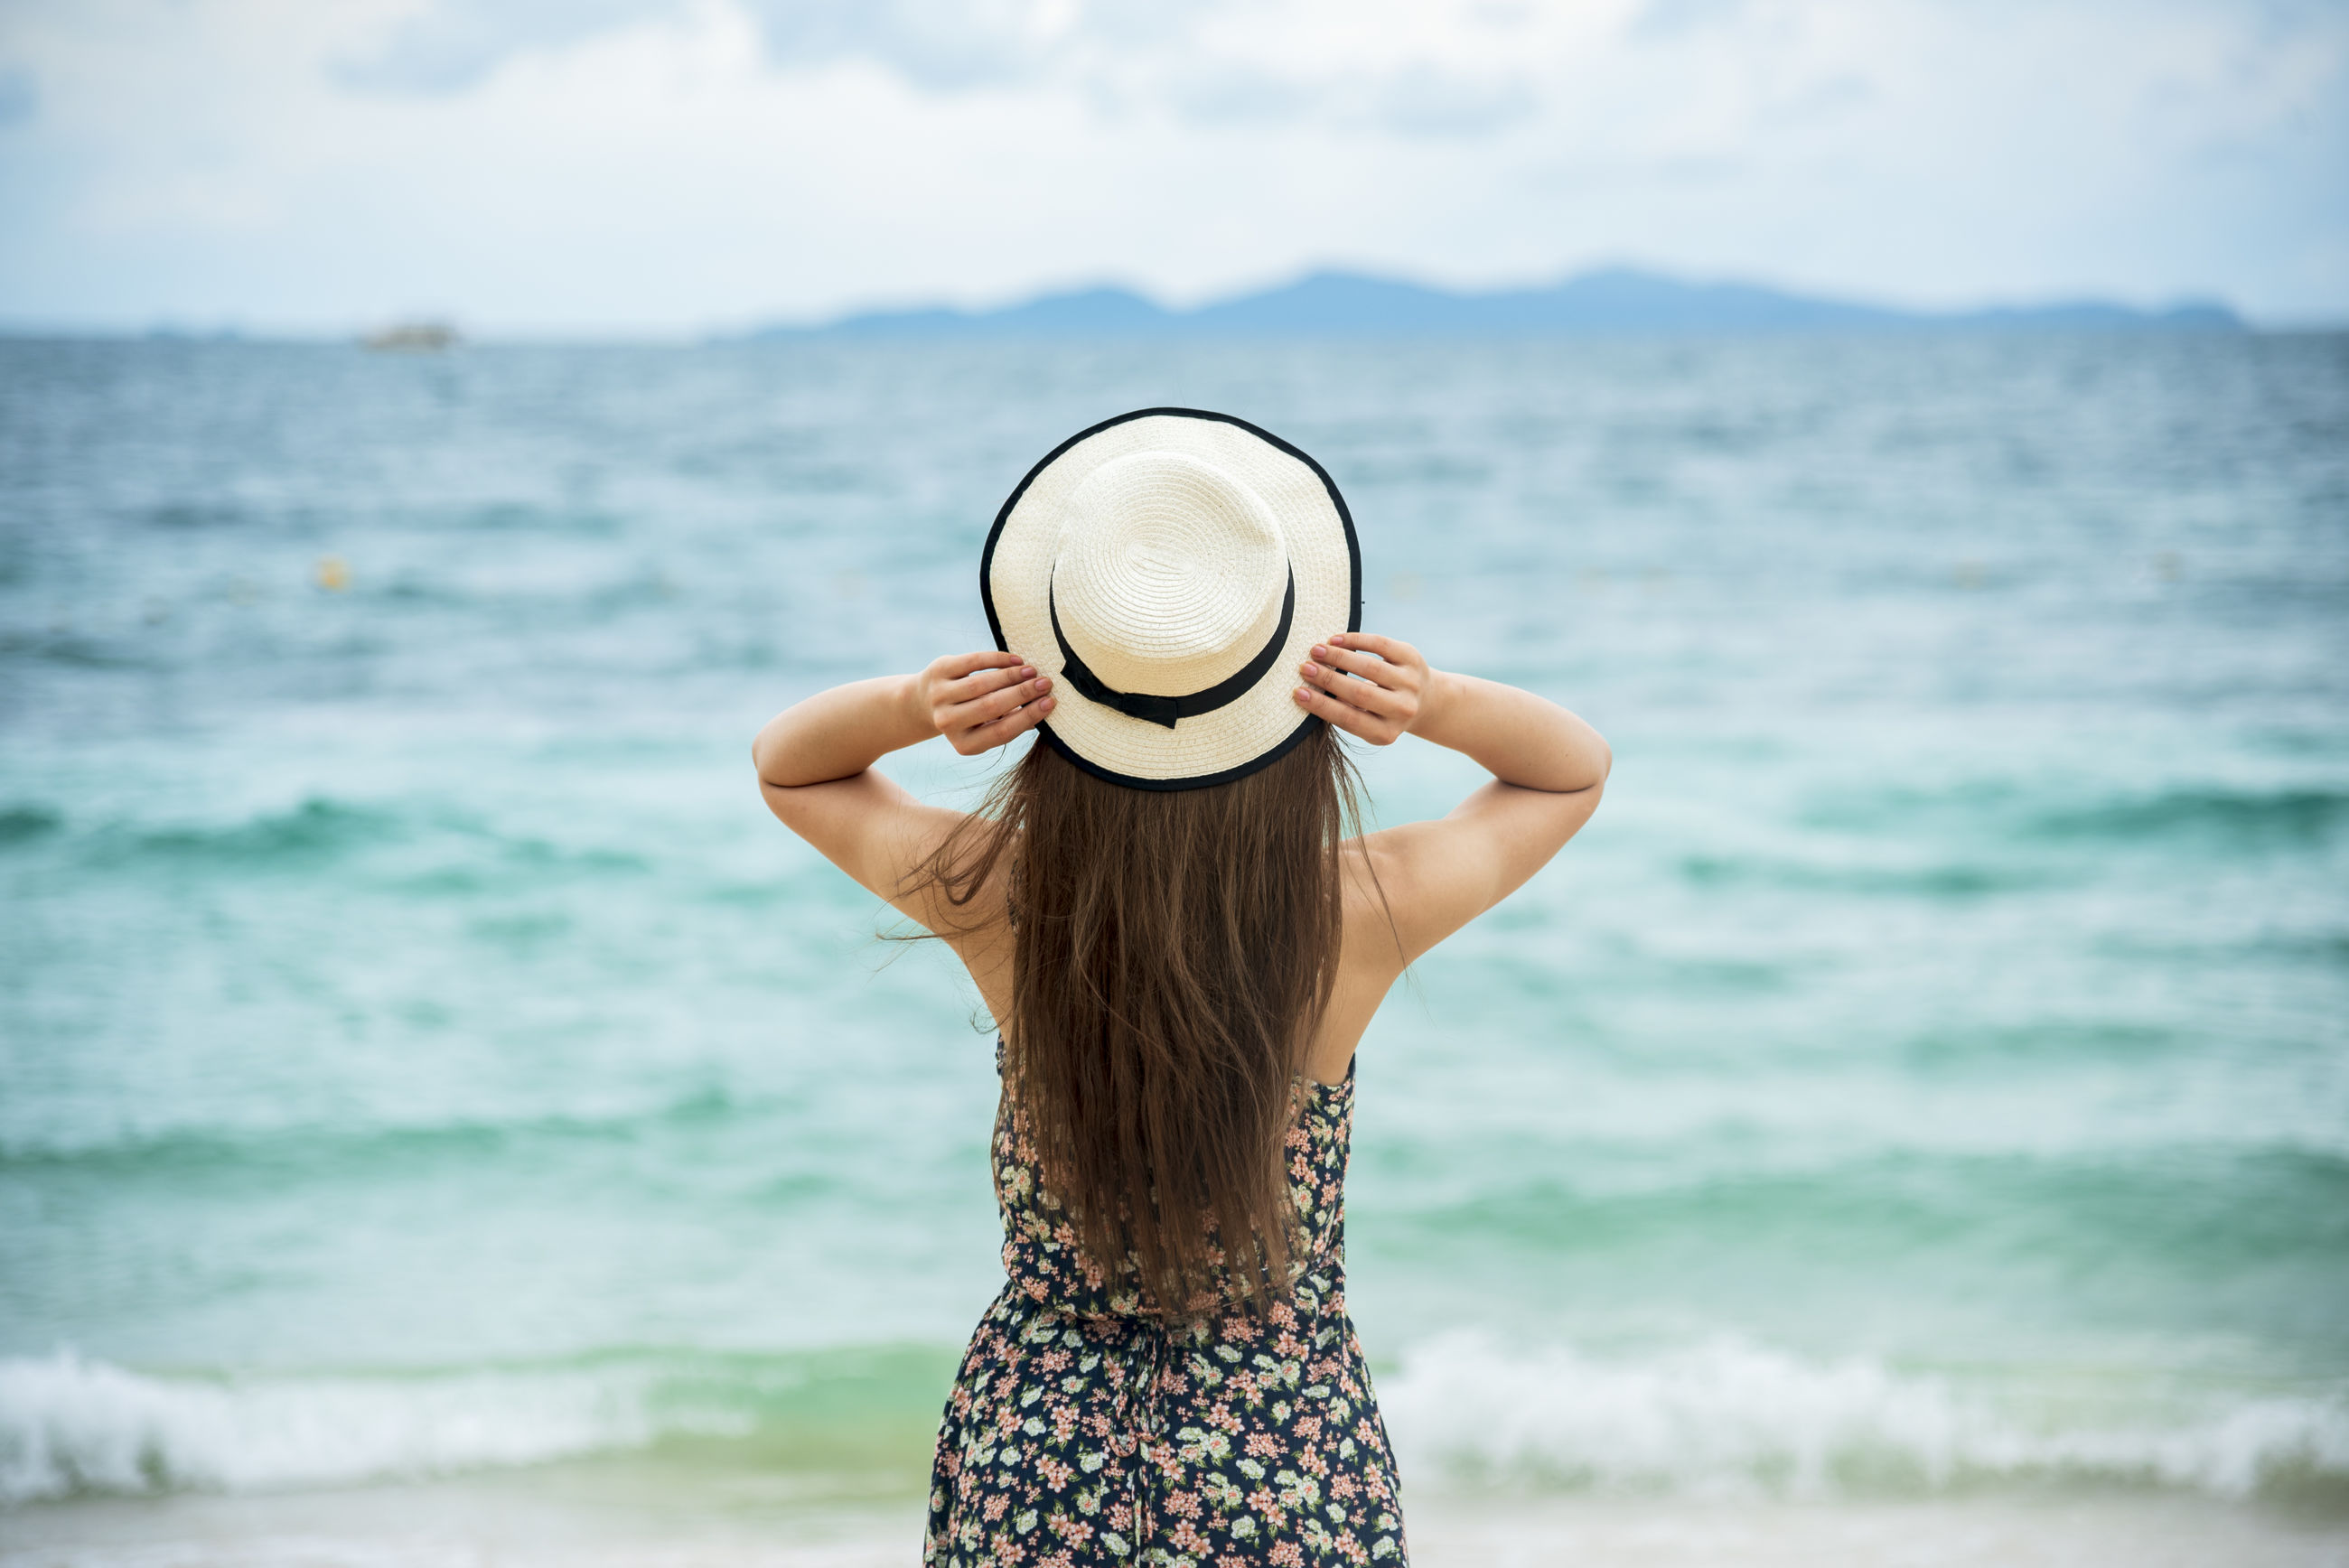 WOMAN HOLDING HAT STANDING AT BEACH